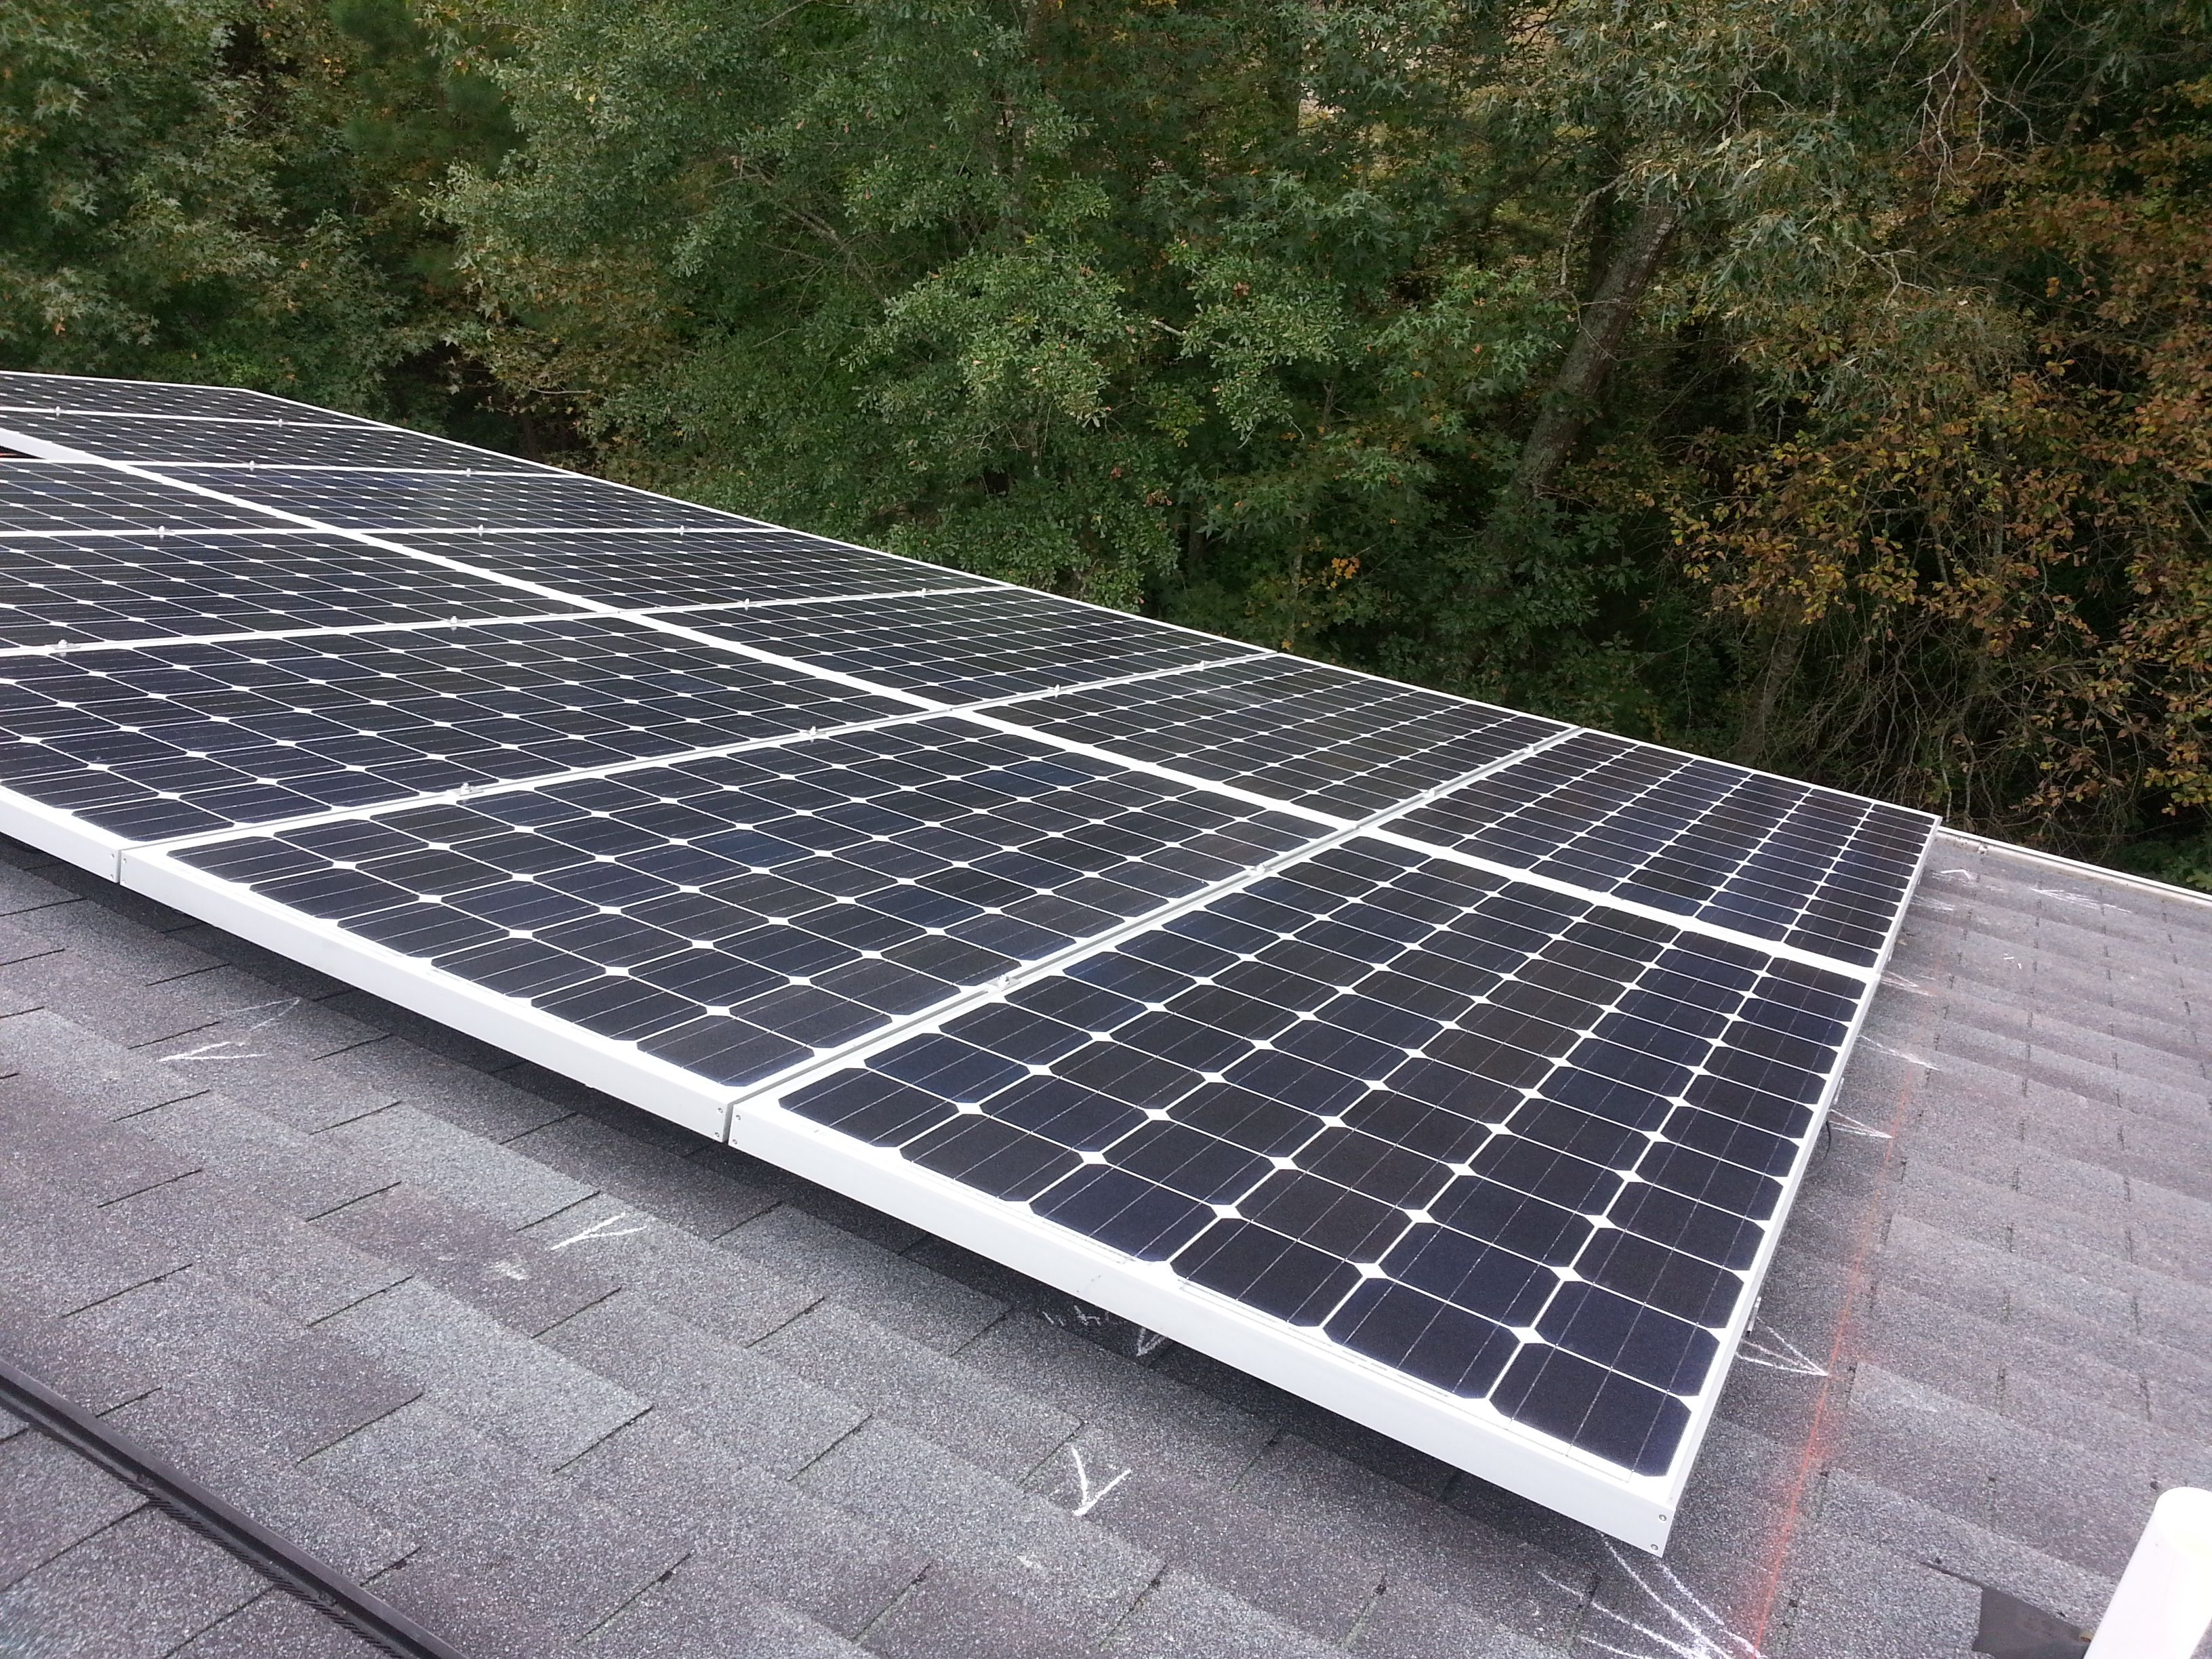 A Home In Apex Recently Installs 13 360 Watt Suniva Solar Panels Giving It A 4 16 Kw Solar Array Putsolaronit Solar Panels Roof Solar Panel Installation